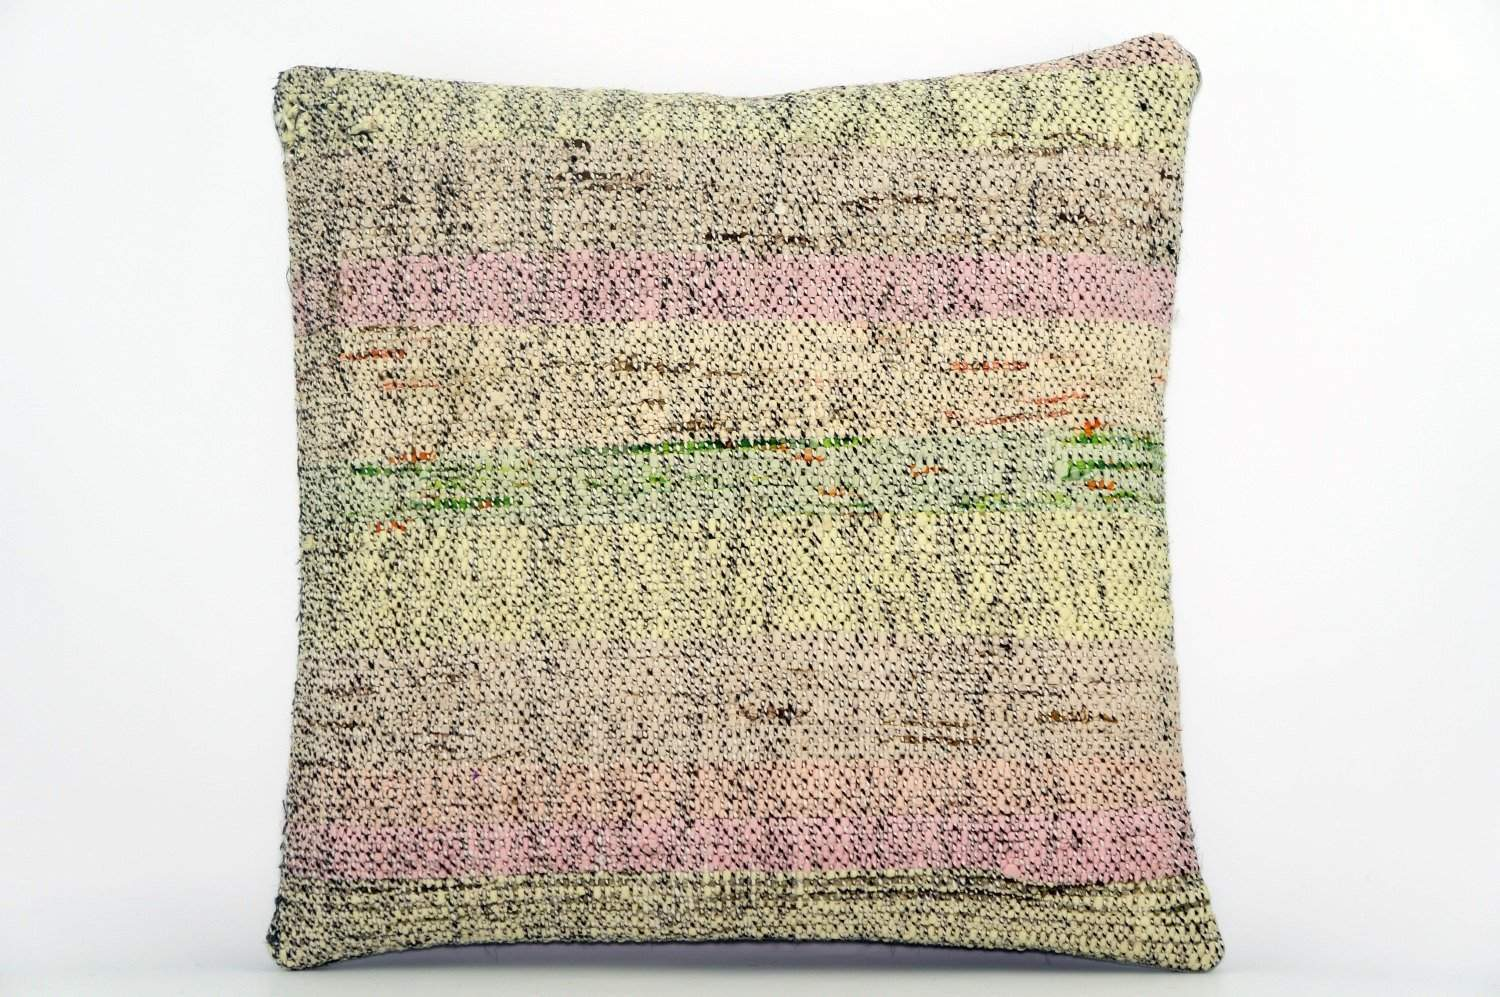 CLEARANCE Handwoven hemp pillow green pink yellow , Decorative Kilim pillow cover  1566_A - kilimpillowstore  - 1